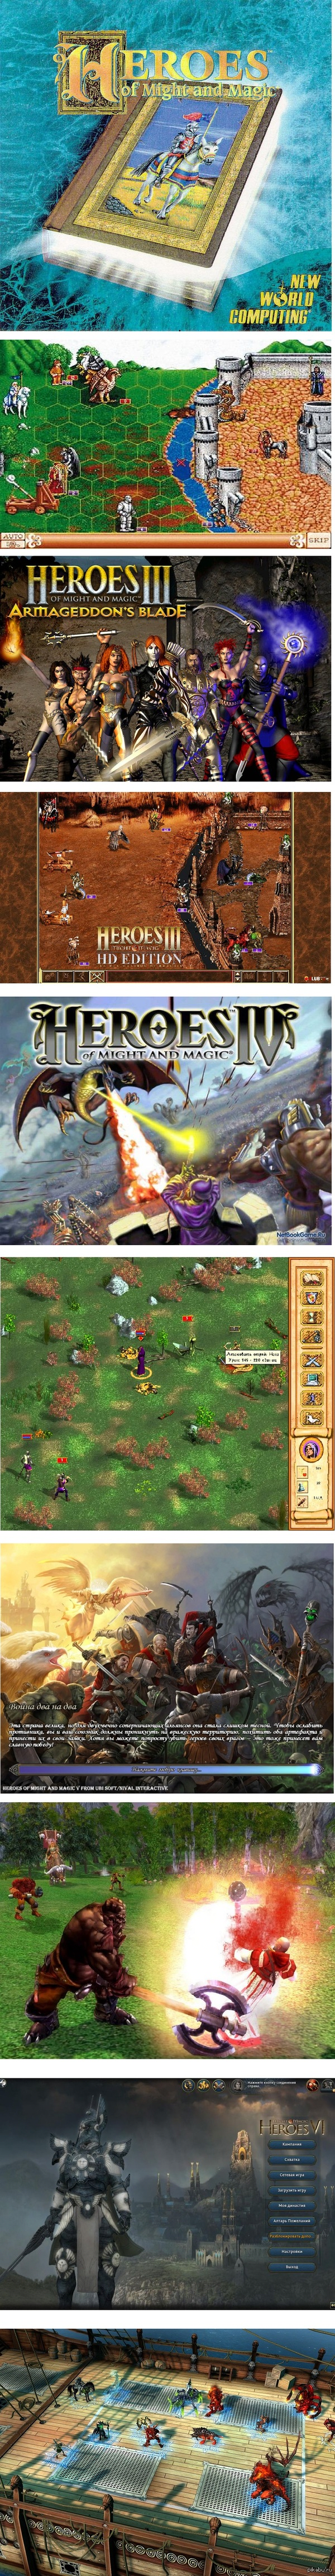 Heroes of Might and Magic исполнилось 20 лет!